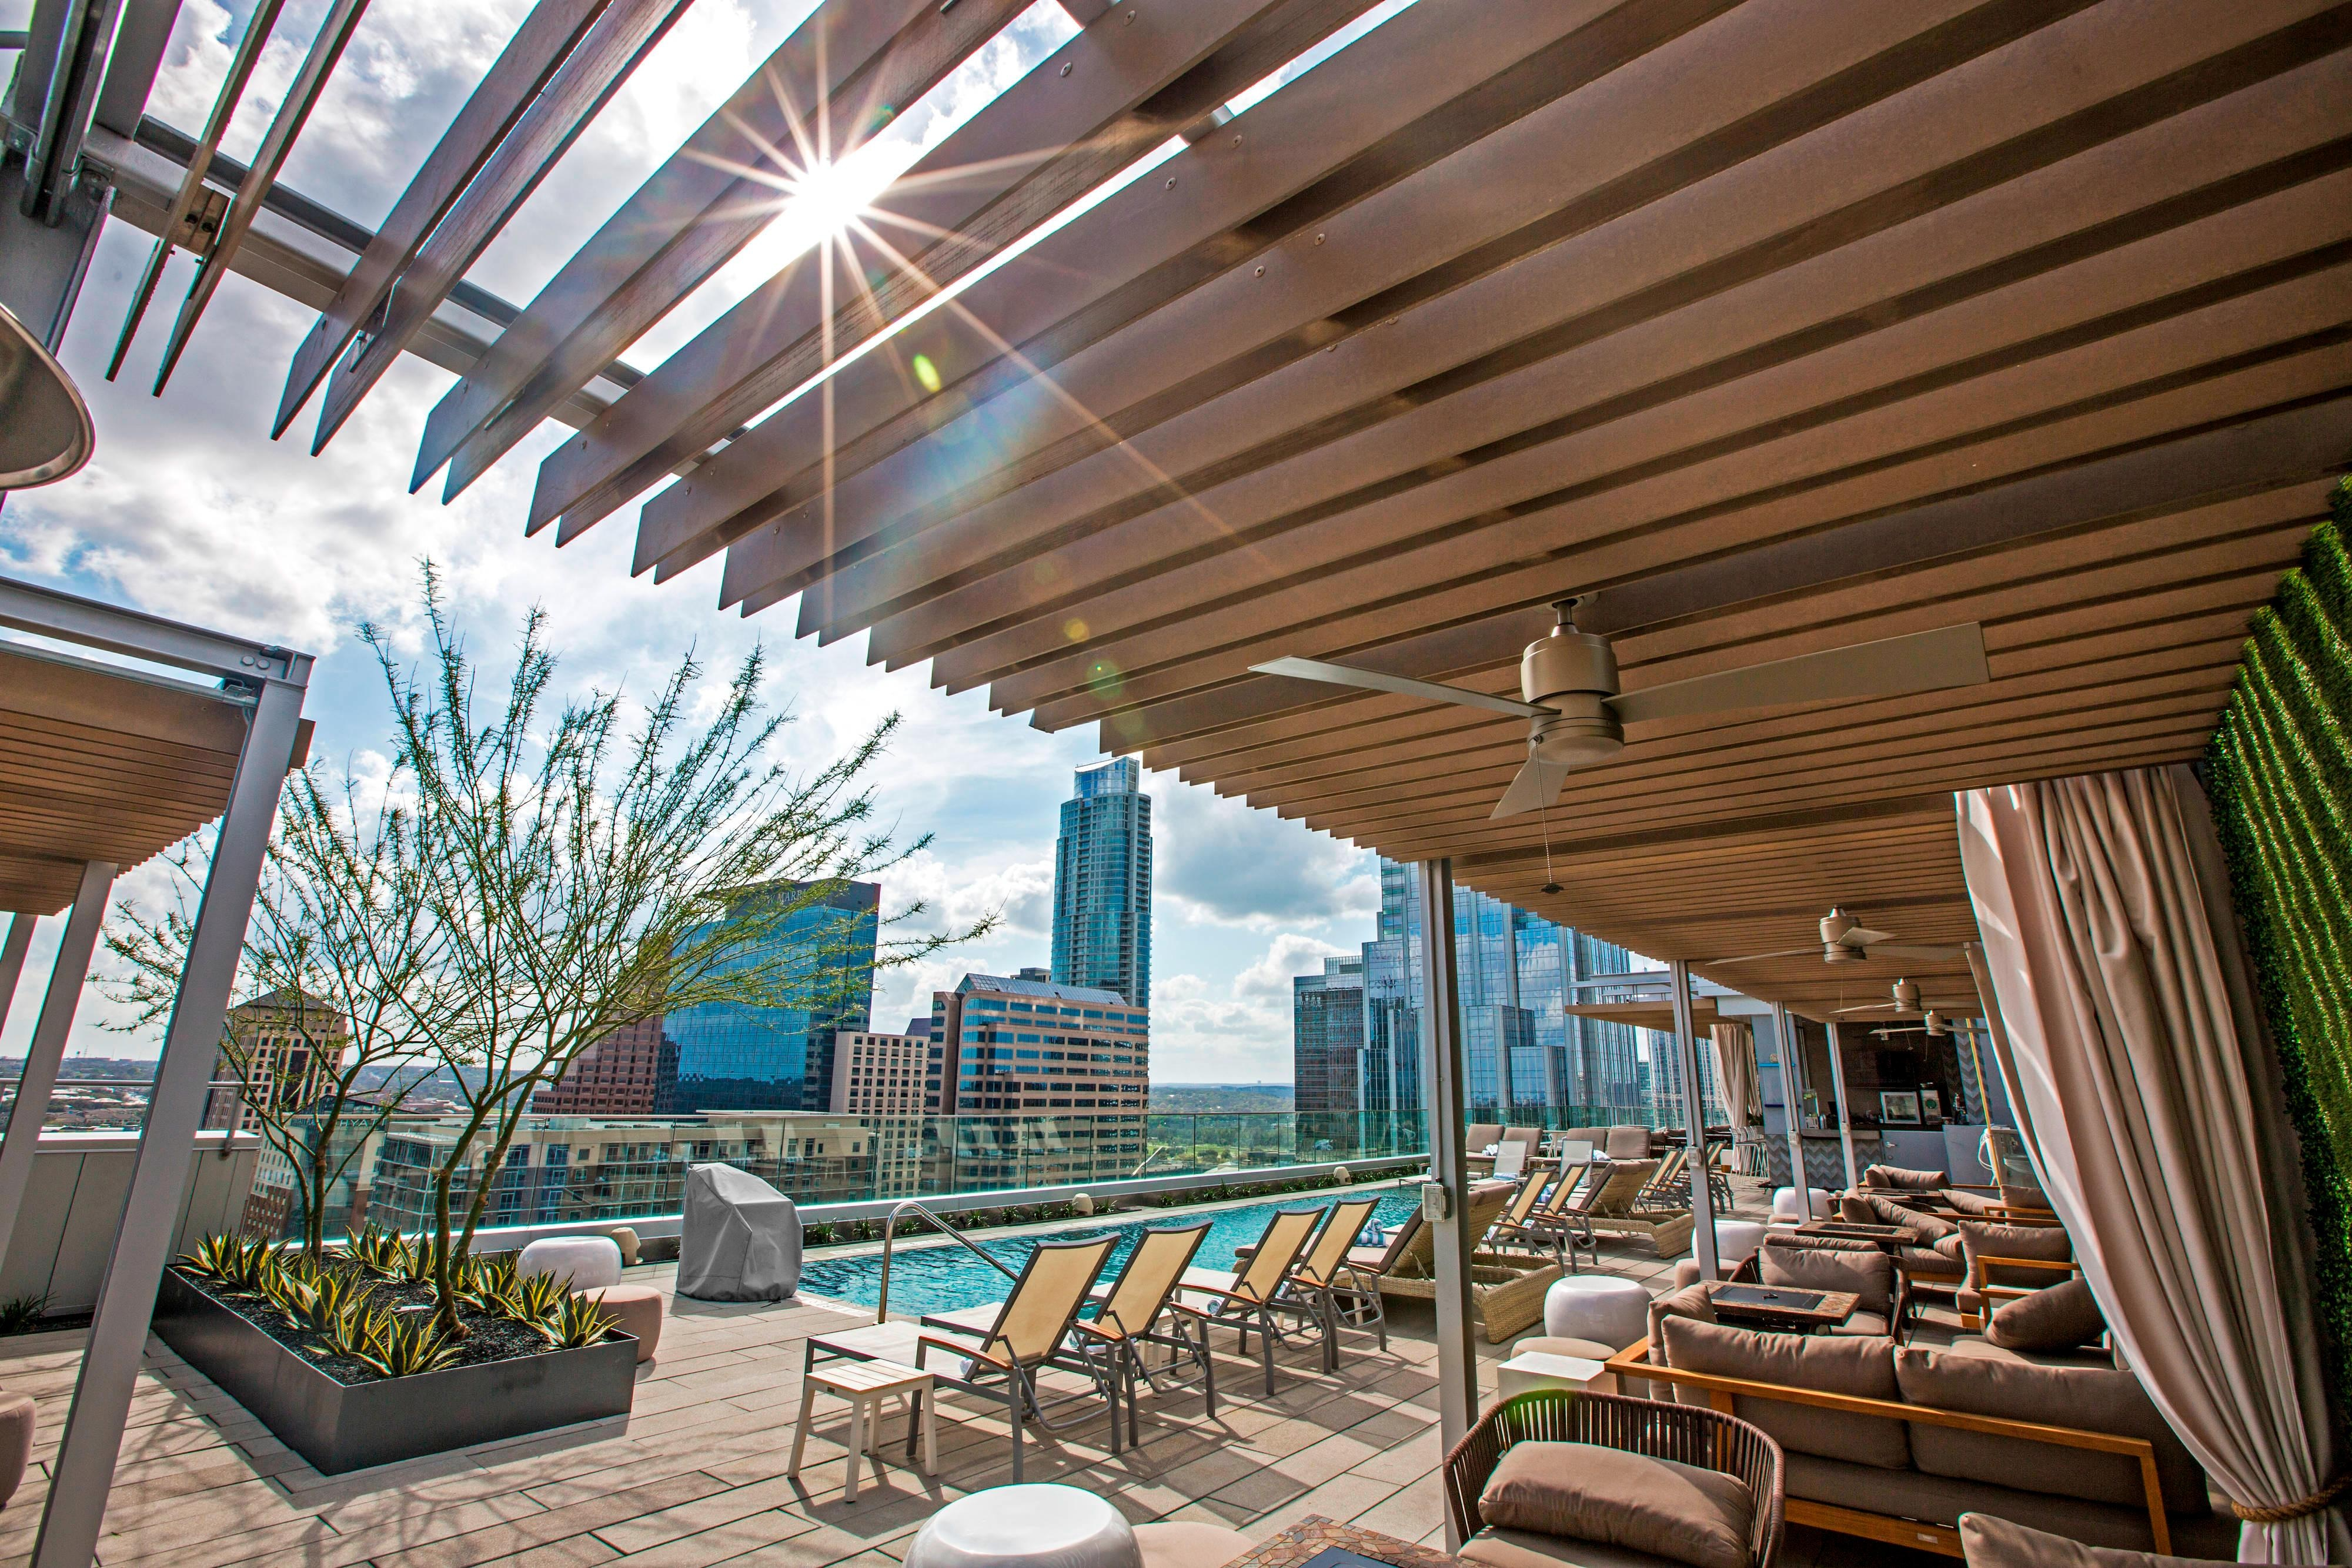 Azul Rooftop Pool Bar and Lounge